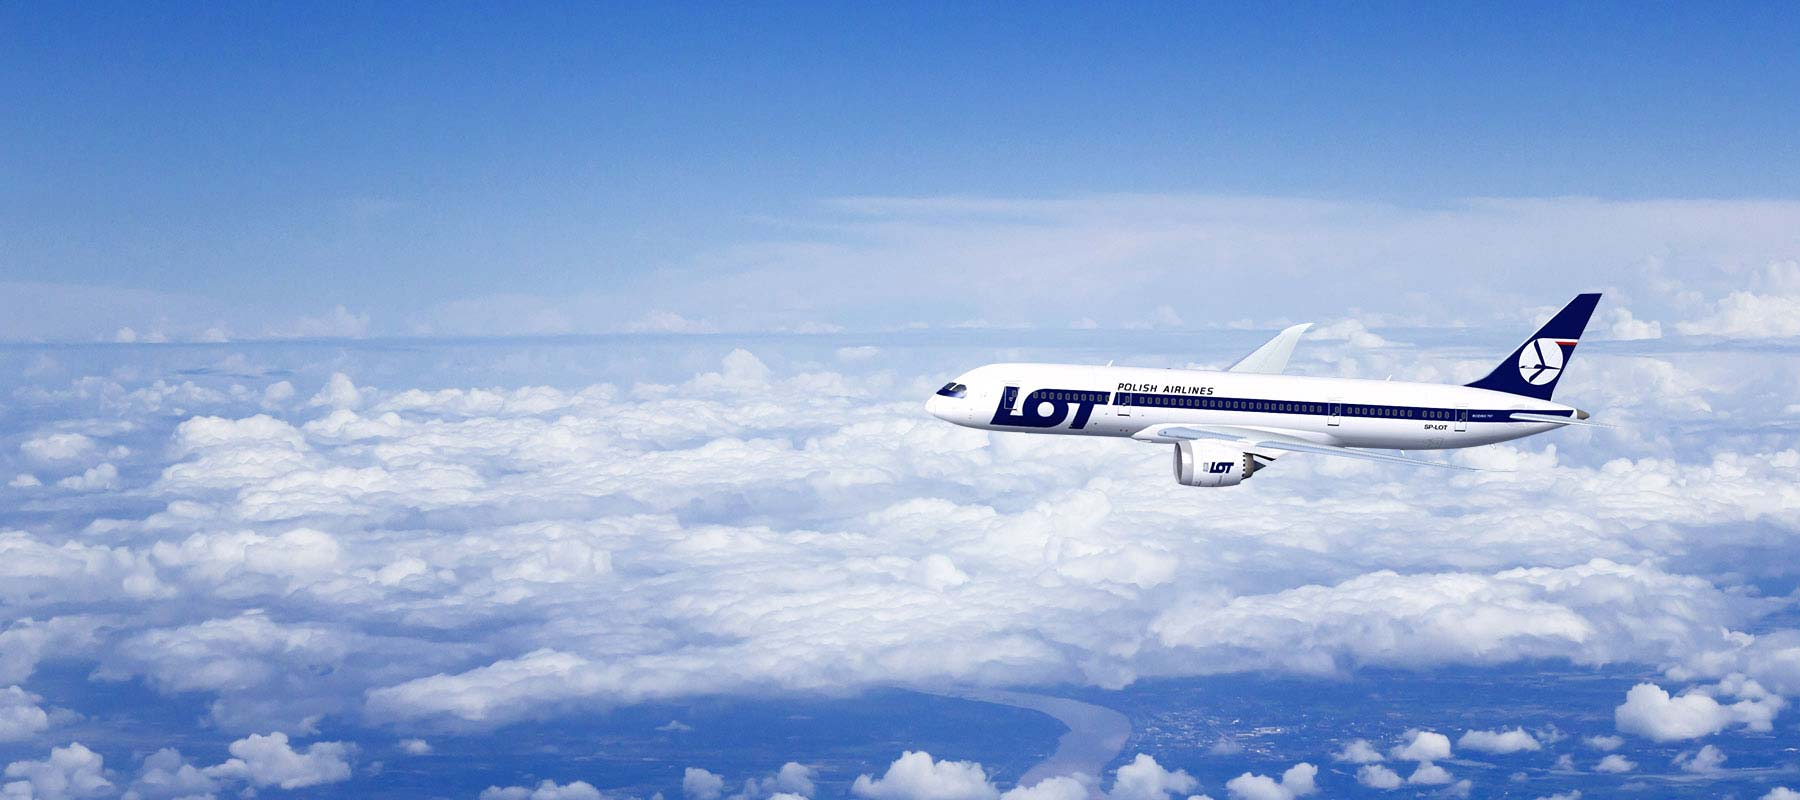 LOT Polish Airlines (LO) Flight Deals & Reservations